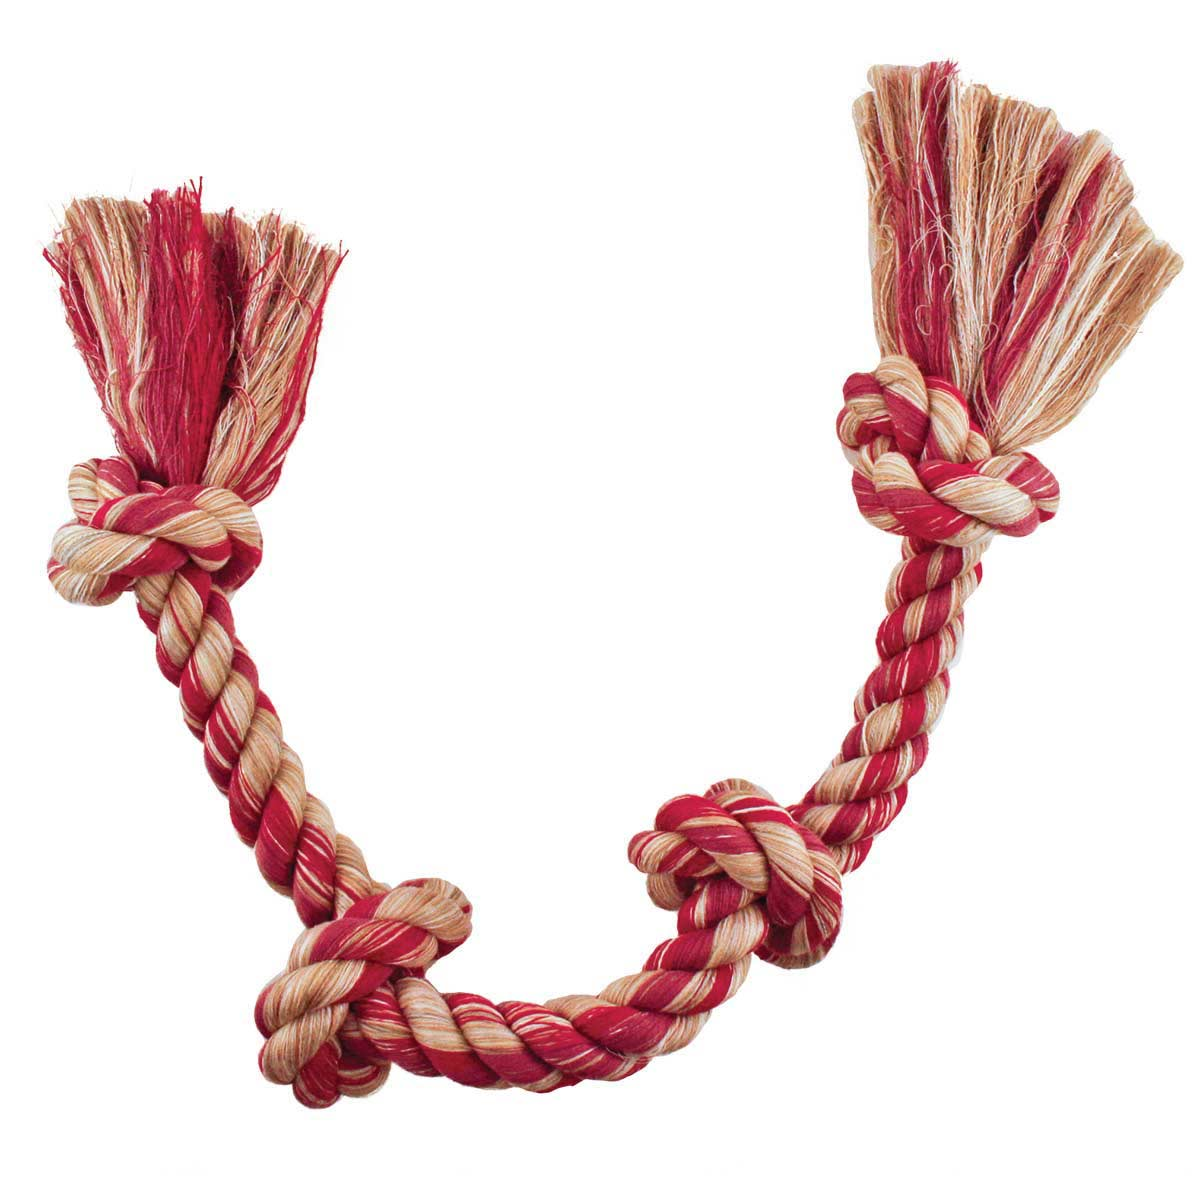 Mammoth Medium 4 Knot Colored Rope Bone - Assorted Colors